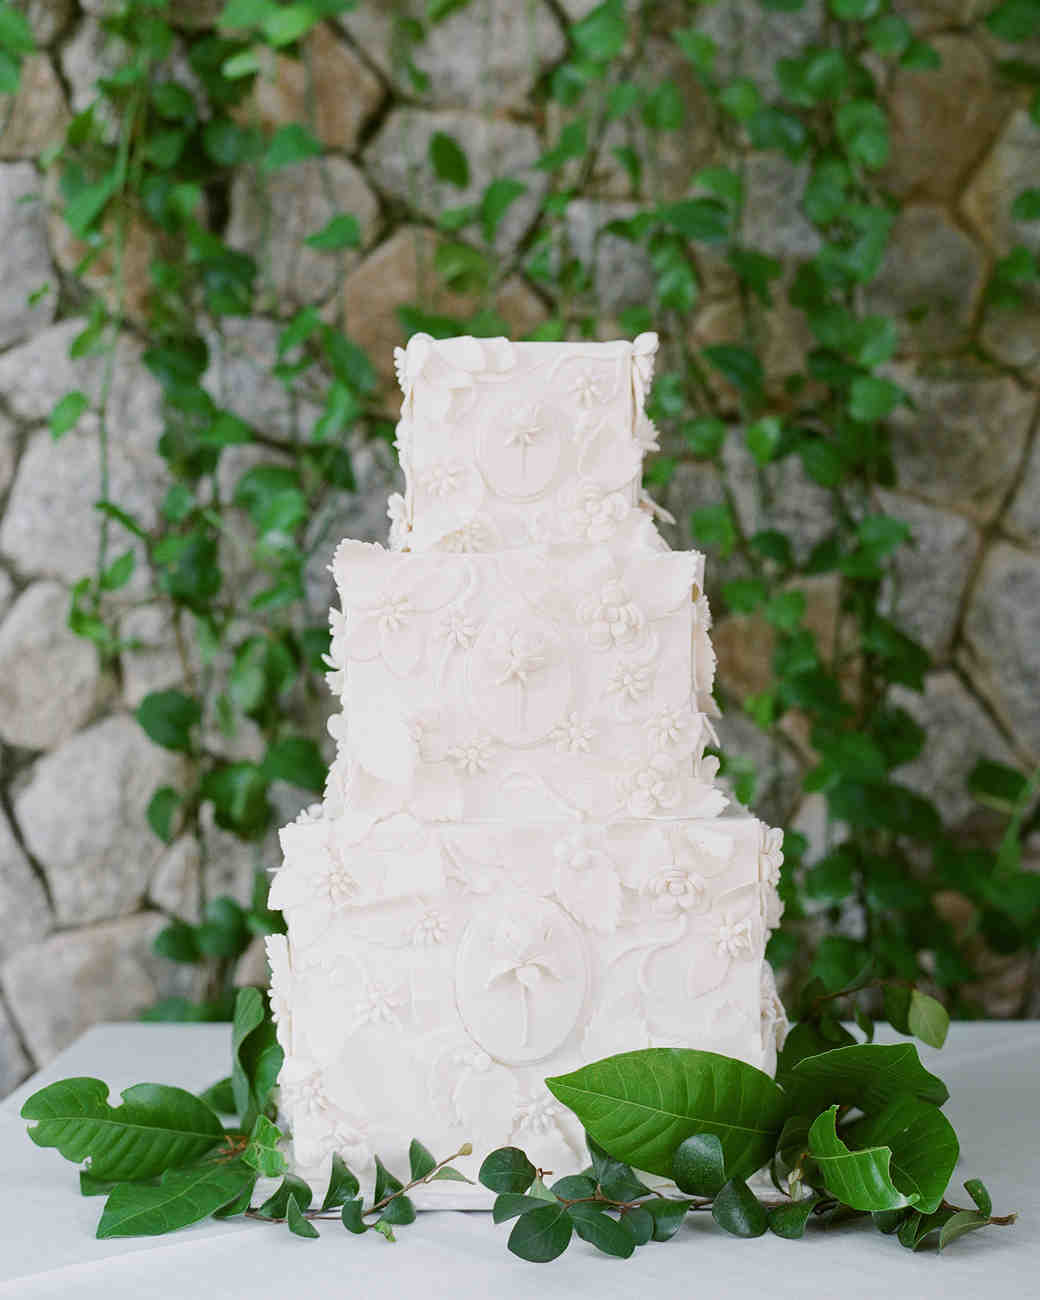 stacy brad wedding thailand white cake